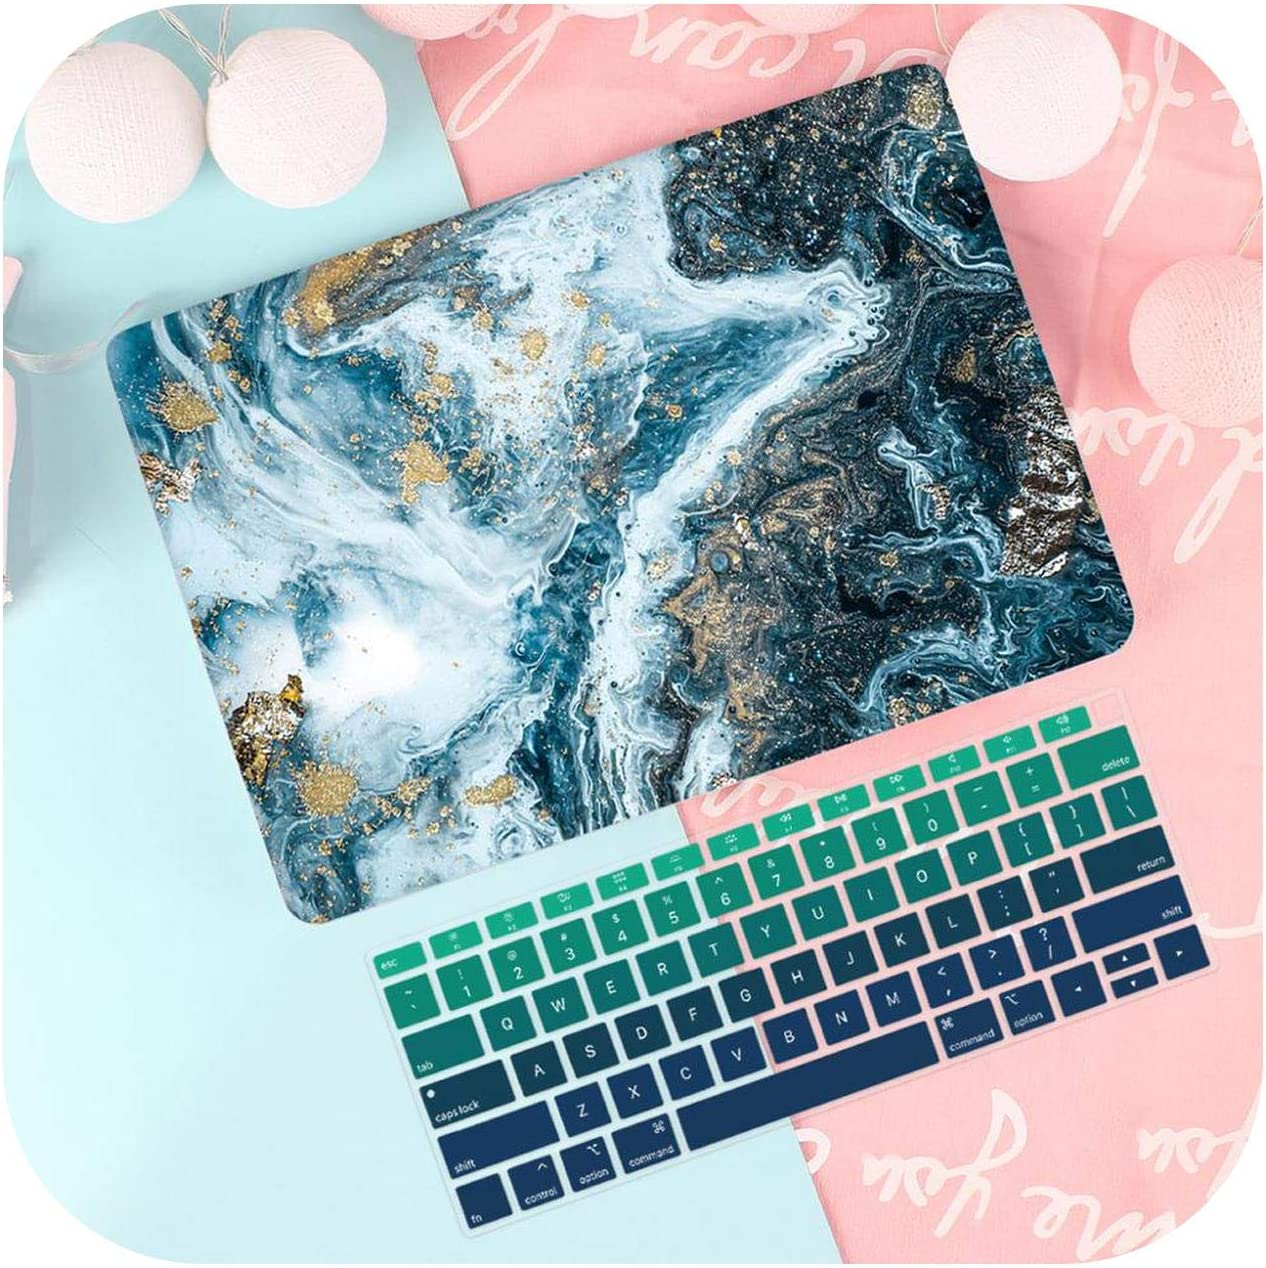 Keyboard Cover-Rs870-Model A1708 New Print Case for MacBook Air Pro Retina 11 12 13.3 for New Mac Book 13 15 Touch Bar 2019 A1932 A2159 A1707 A1990